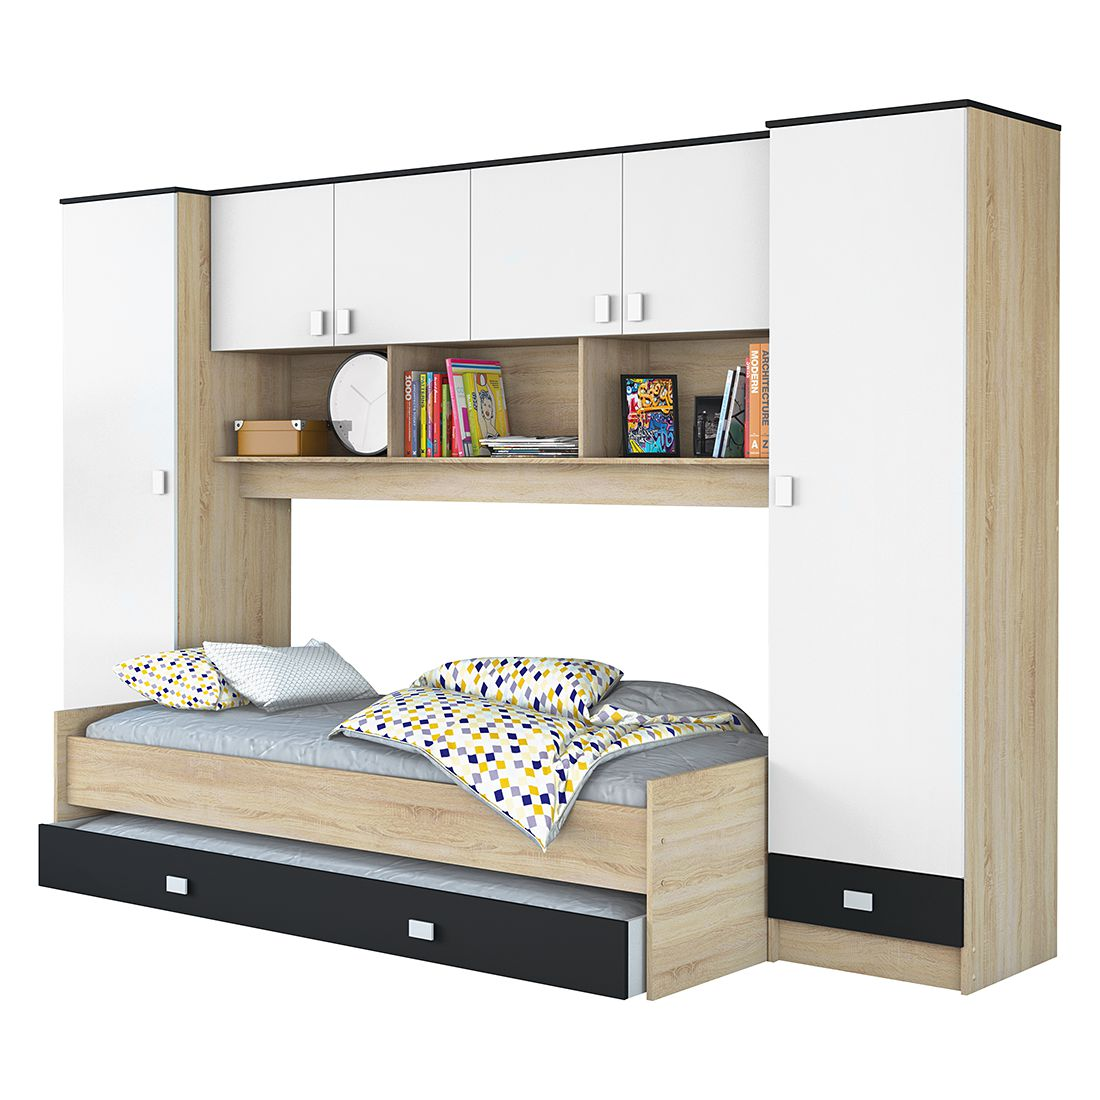 kinderzimmer online g nstig kaufen ber shop24. Black Bedroom Furniture Sets. Home Design Ideas